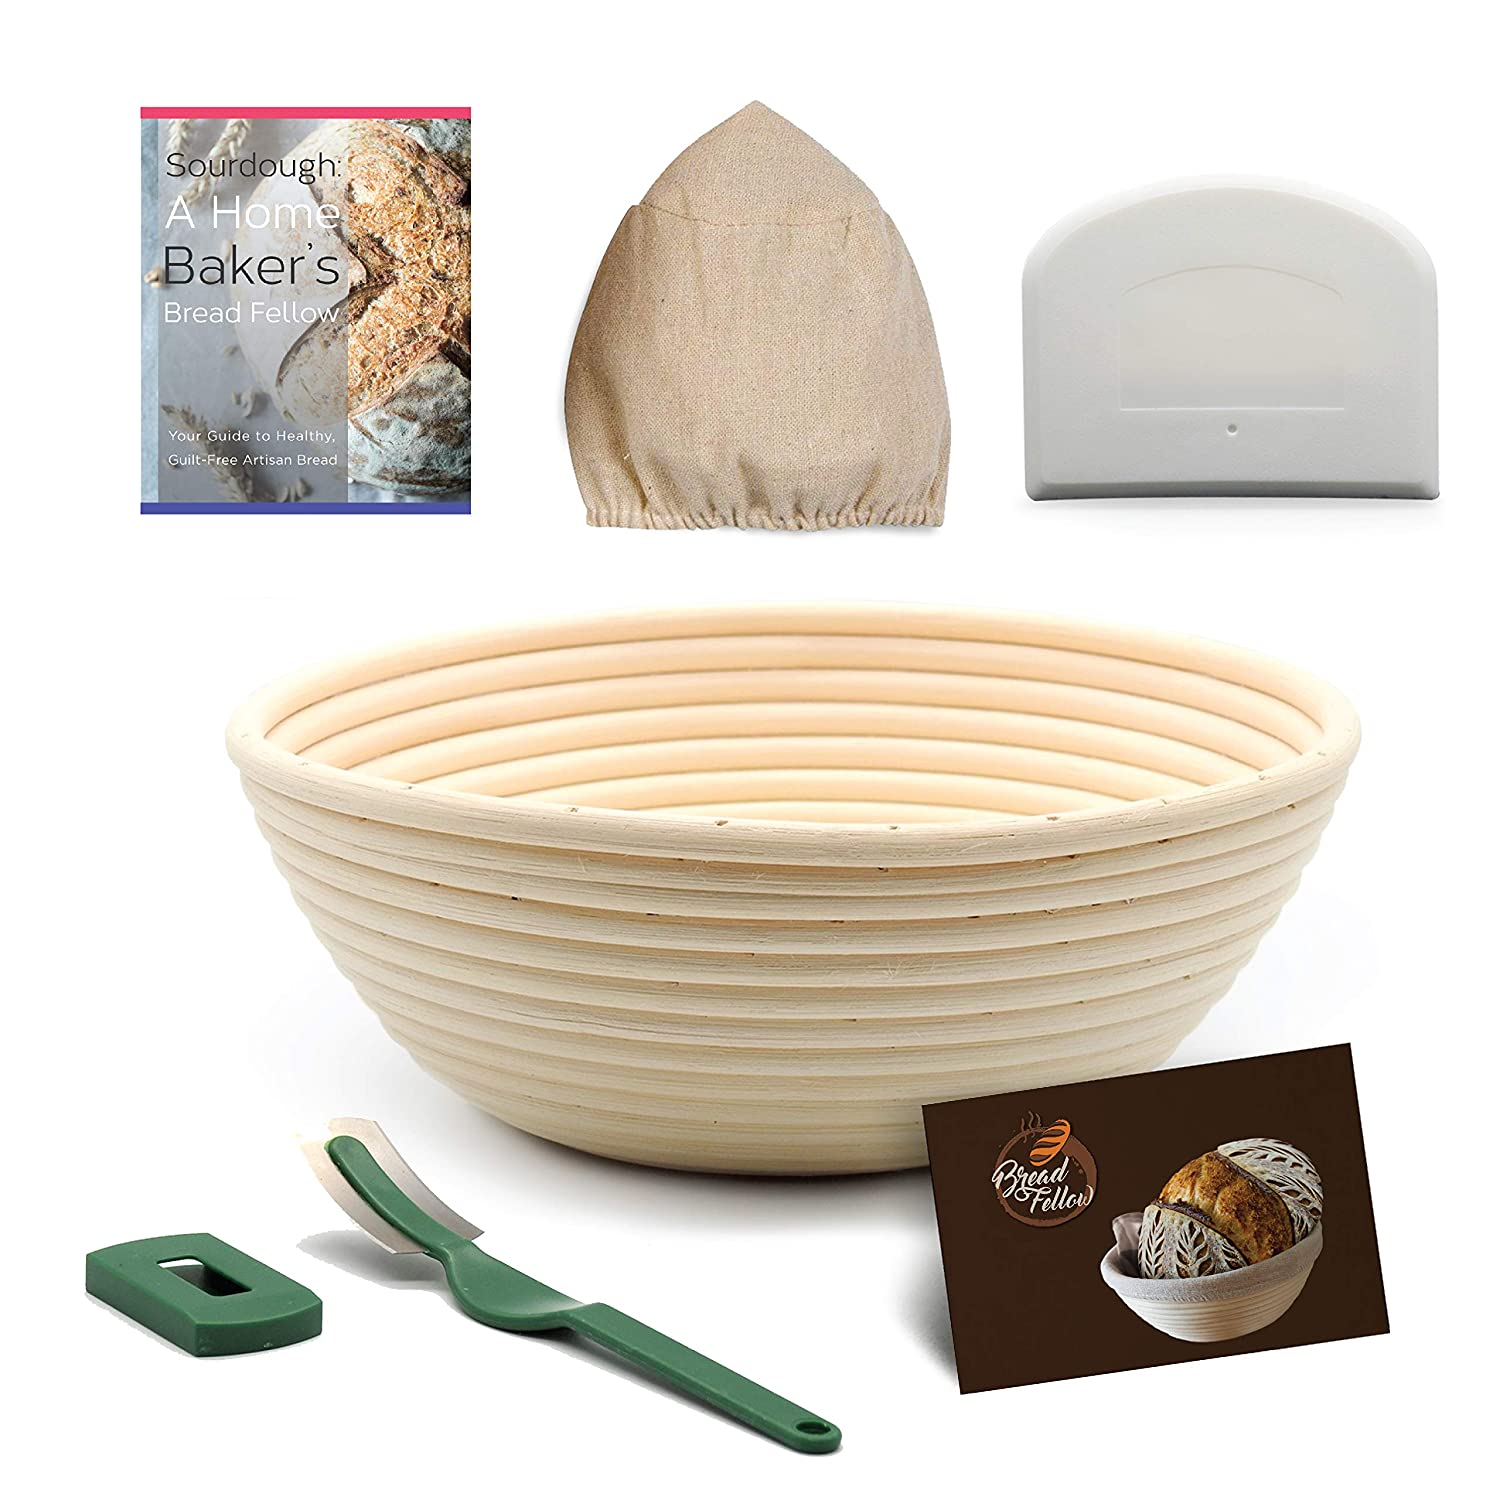 Banneton Bread Proofing Basket Set: 9 inch Round Brotform Bread Basket Dough Bowl | Cloth Liner | Dough Scraper | Bread Lame | Sourdough Recipe - For Professional and Home Bakers Artisan Bread Making Bread Fellow